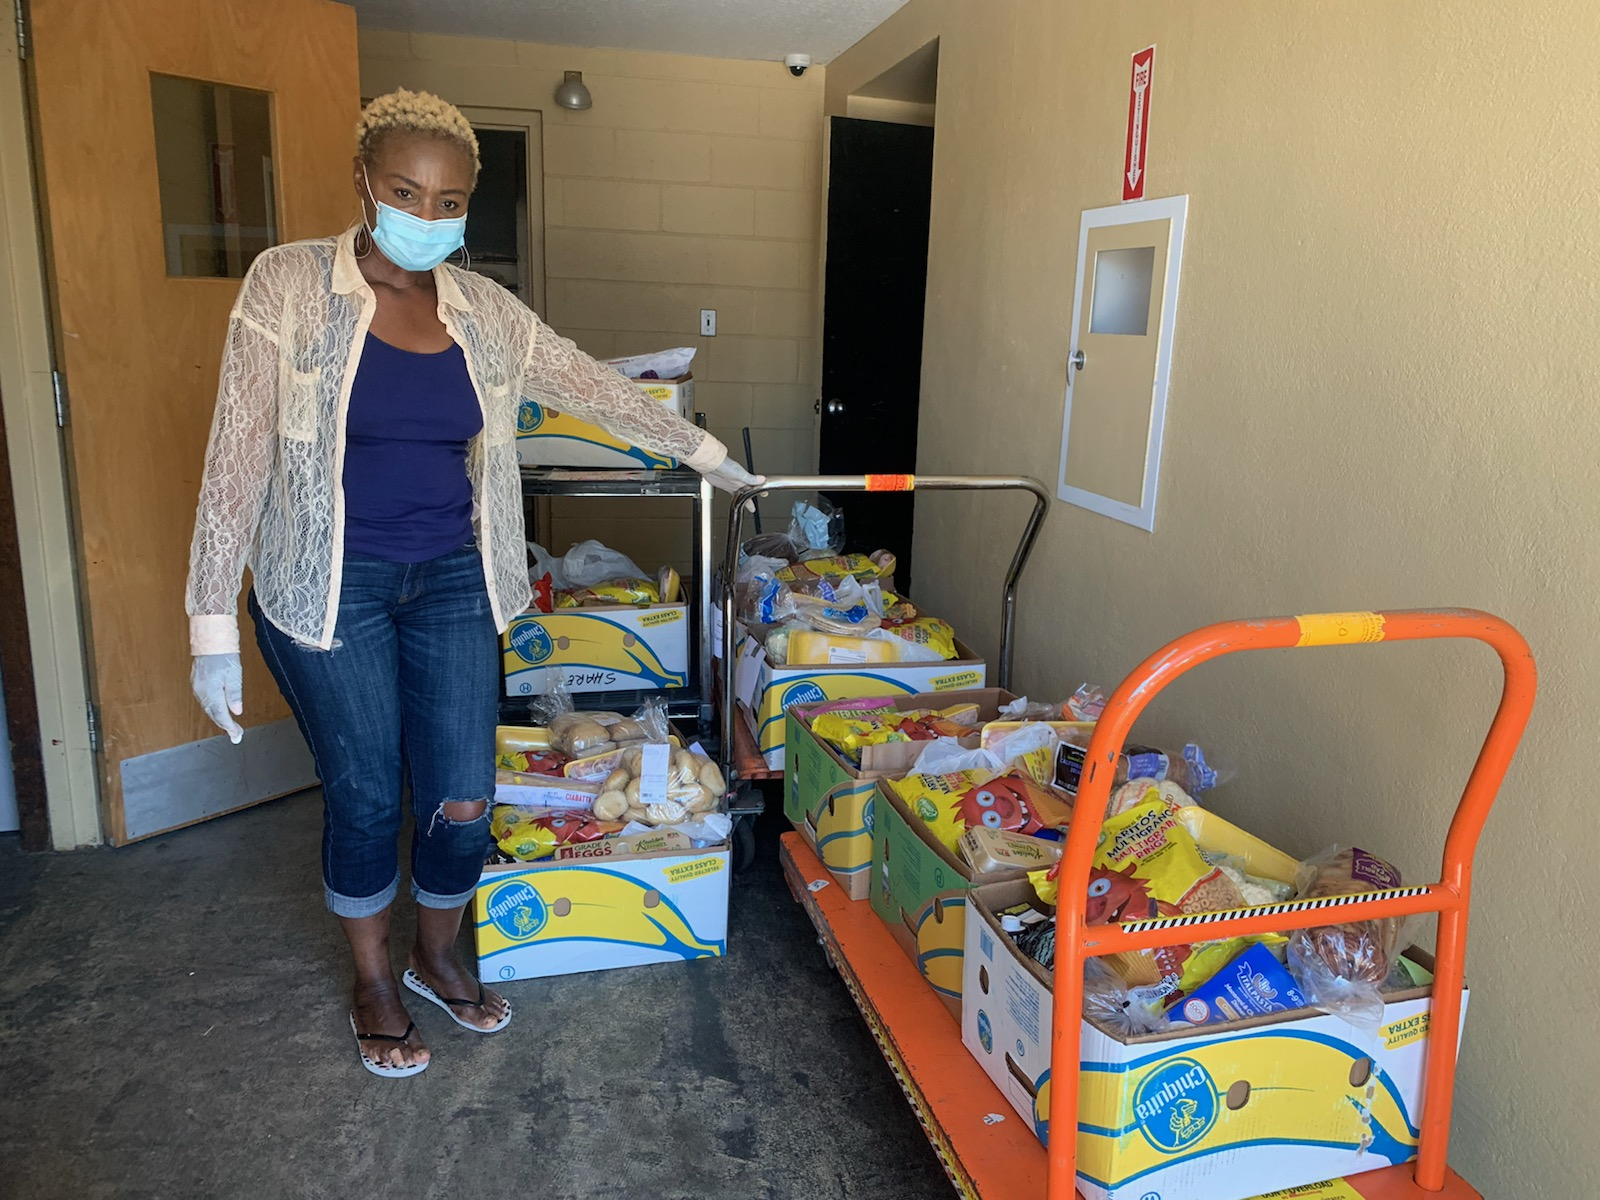 Florence, a Nurse Practitioner, is ready to load and deliver food to those who are home and can't go out because of COVID-19